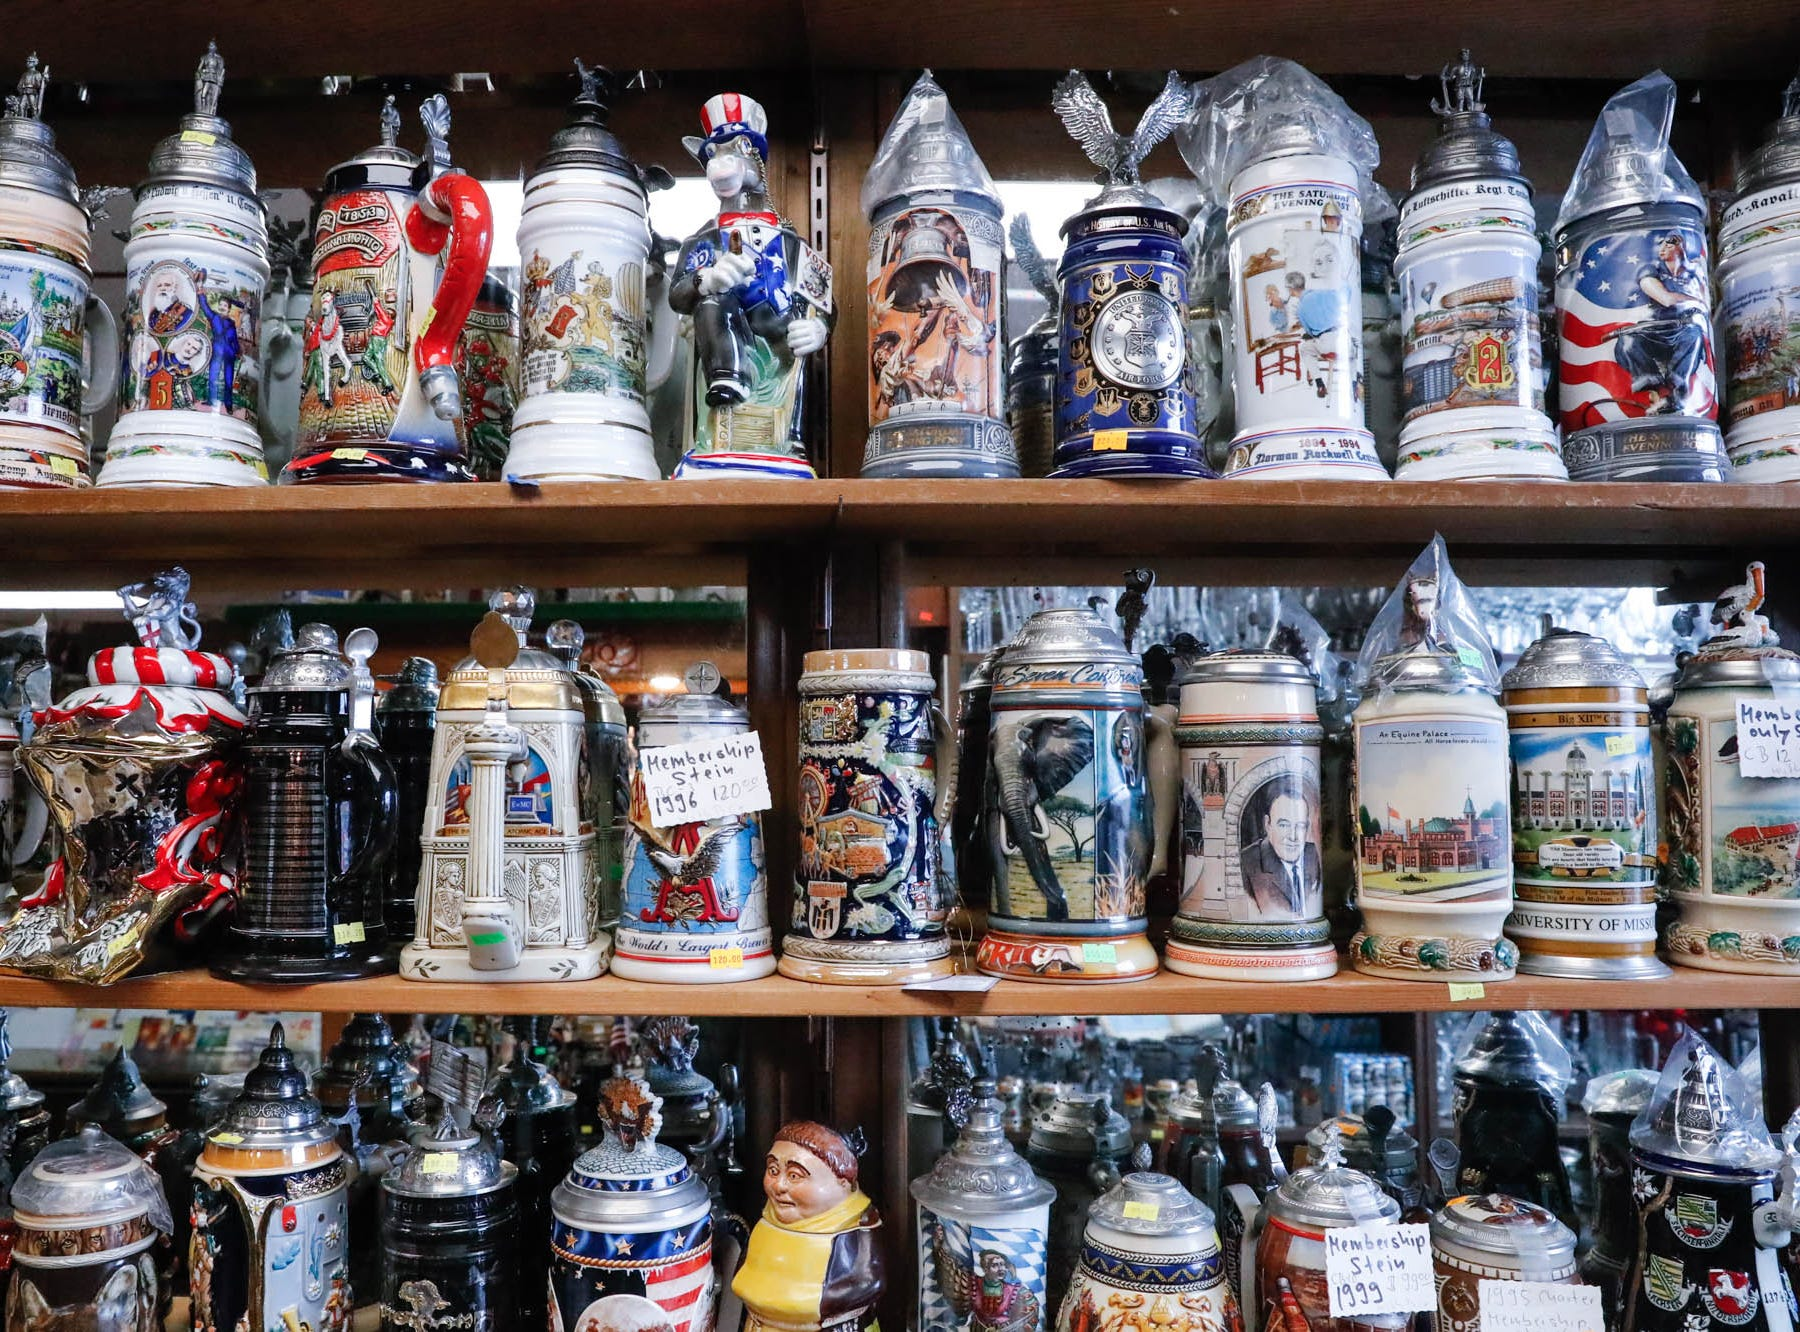 German beer steins are for sale at the Heidelberg Haus Cafe and Bakery, 7625 Pendleton Pike, Indianapolis Ind., on Saturday, Dec. 8th, 2018. The cafe, bakery, and German grocery are well known for its extensive collection of German Kitsch.